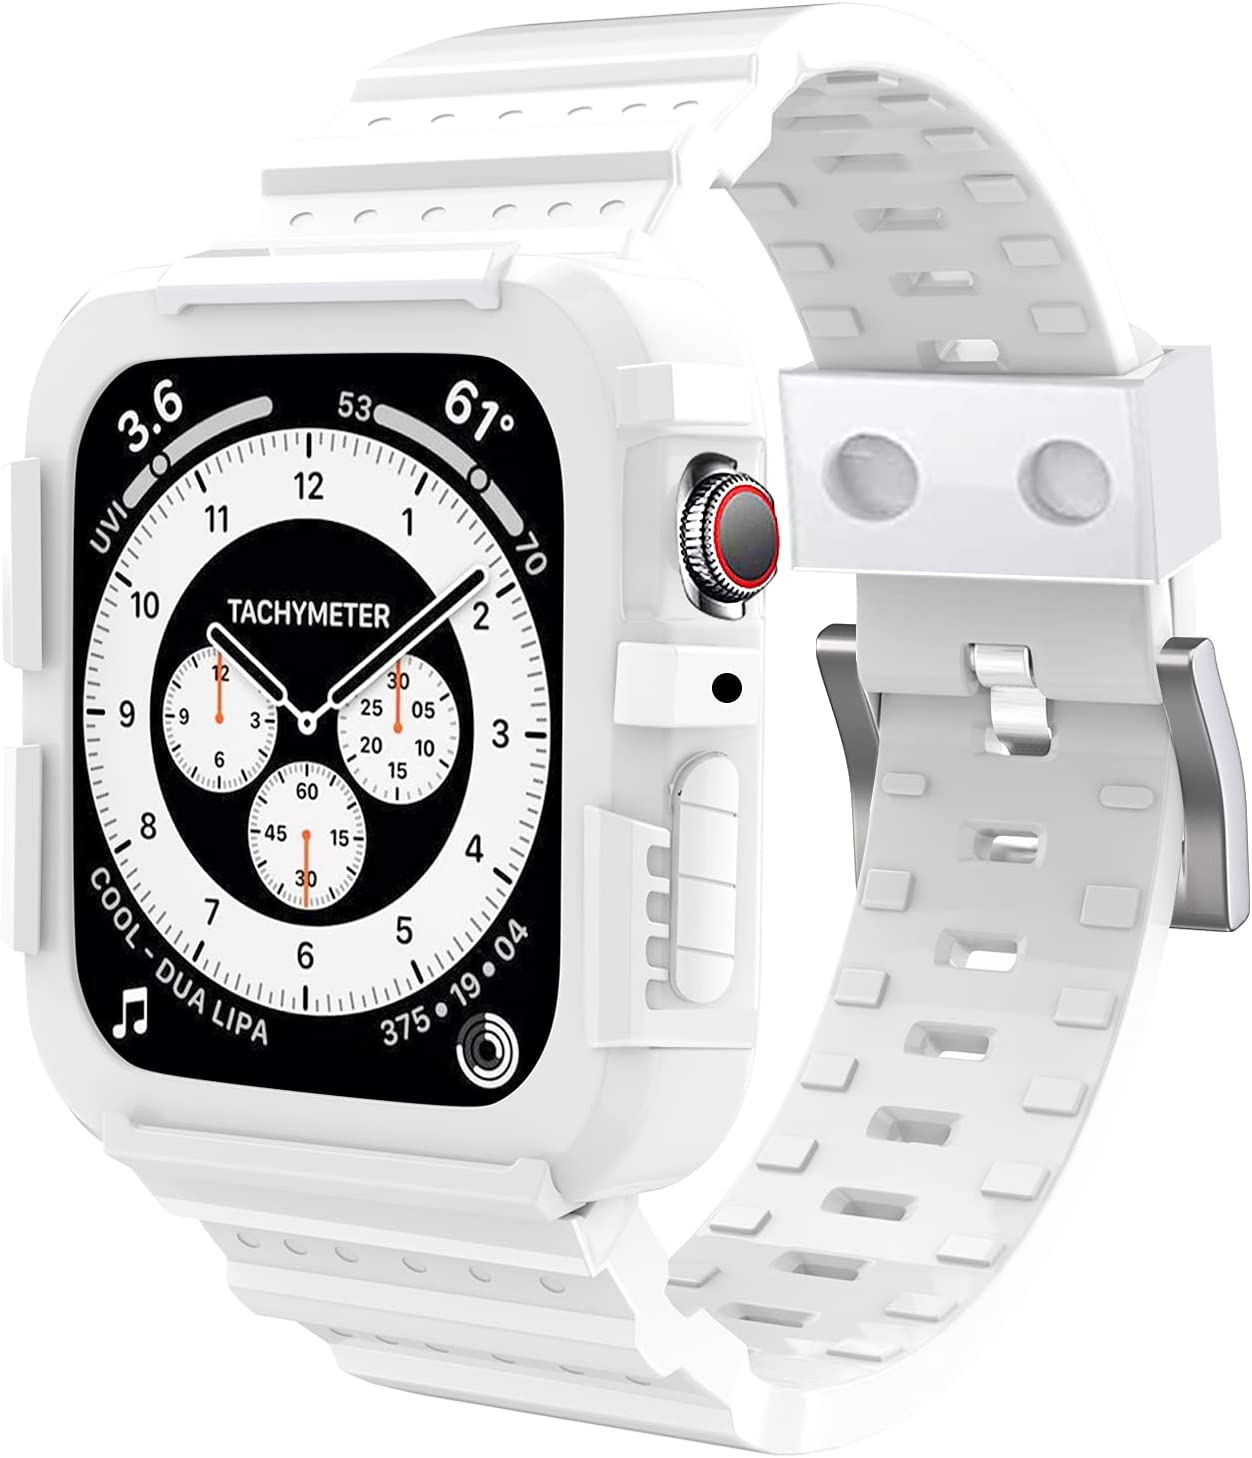 SLYEN Compatible for Apple Watch Band with Case Accessories 42mm 44mm Men Women,Bright White Rugged Strap with Shock-Proof Bumper for iWatch Series SE/6/5/4/3/2